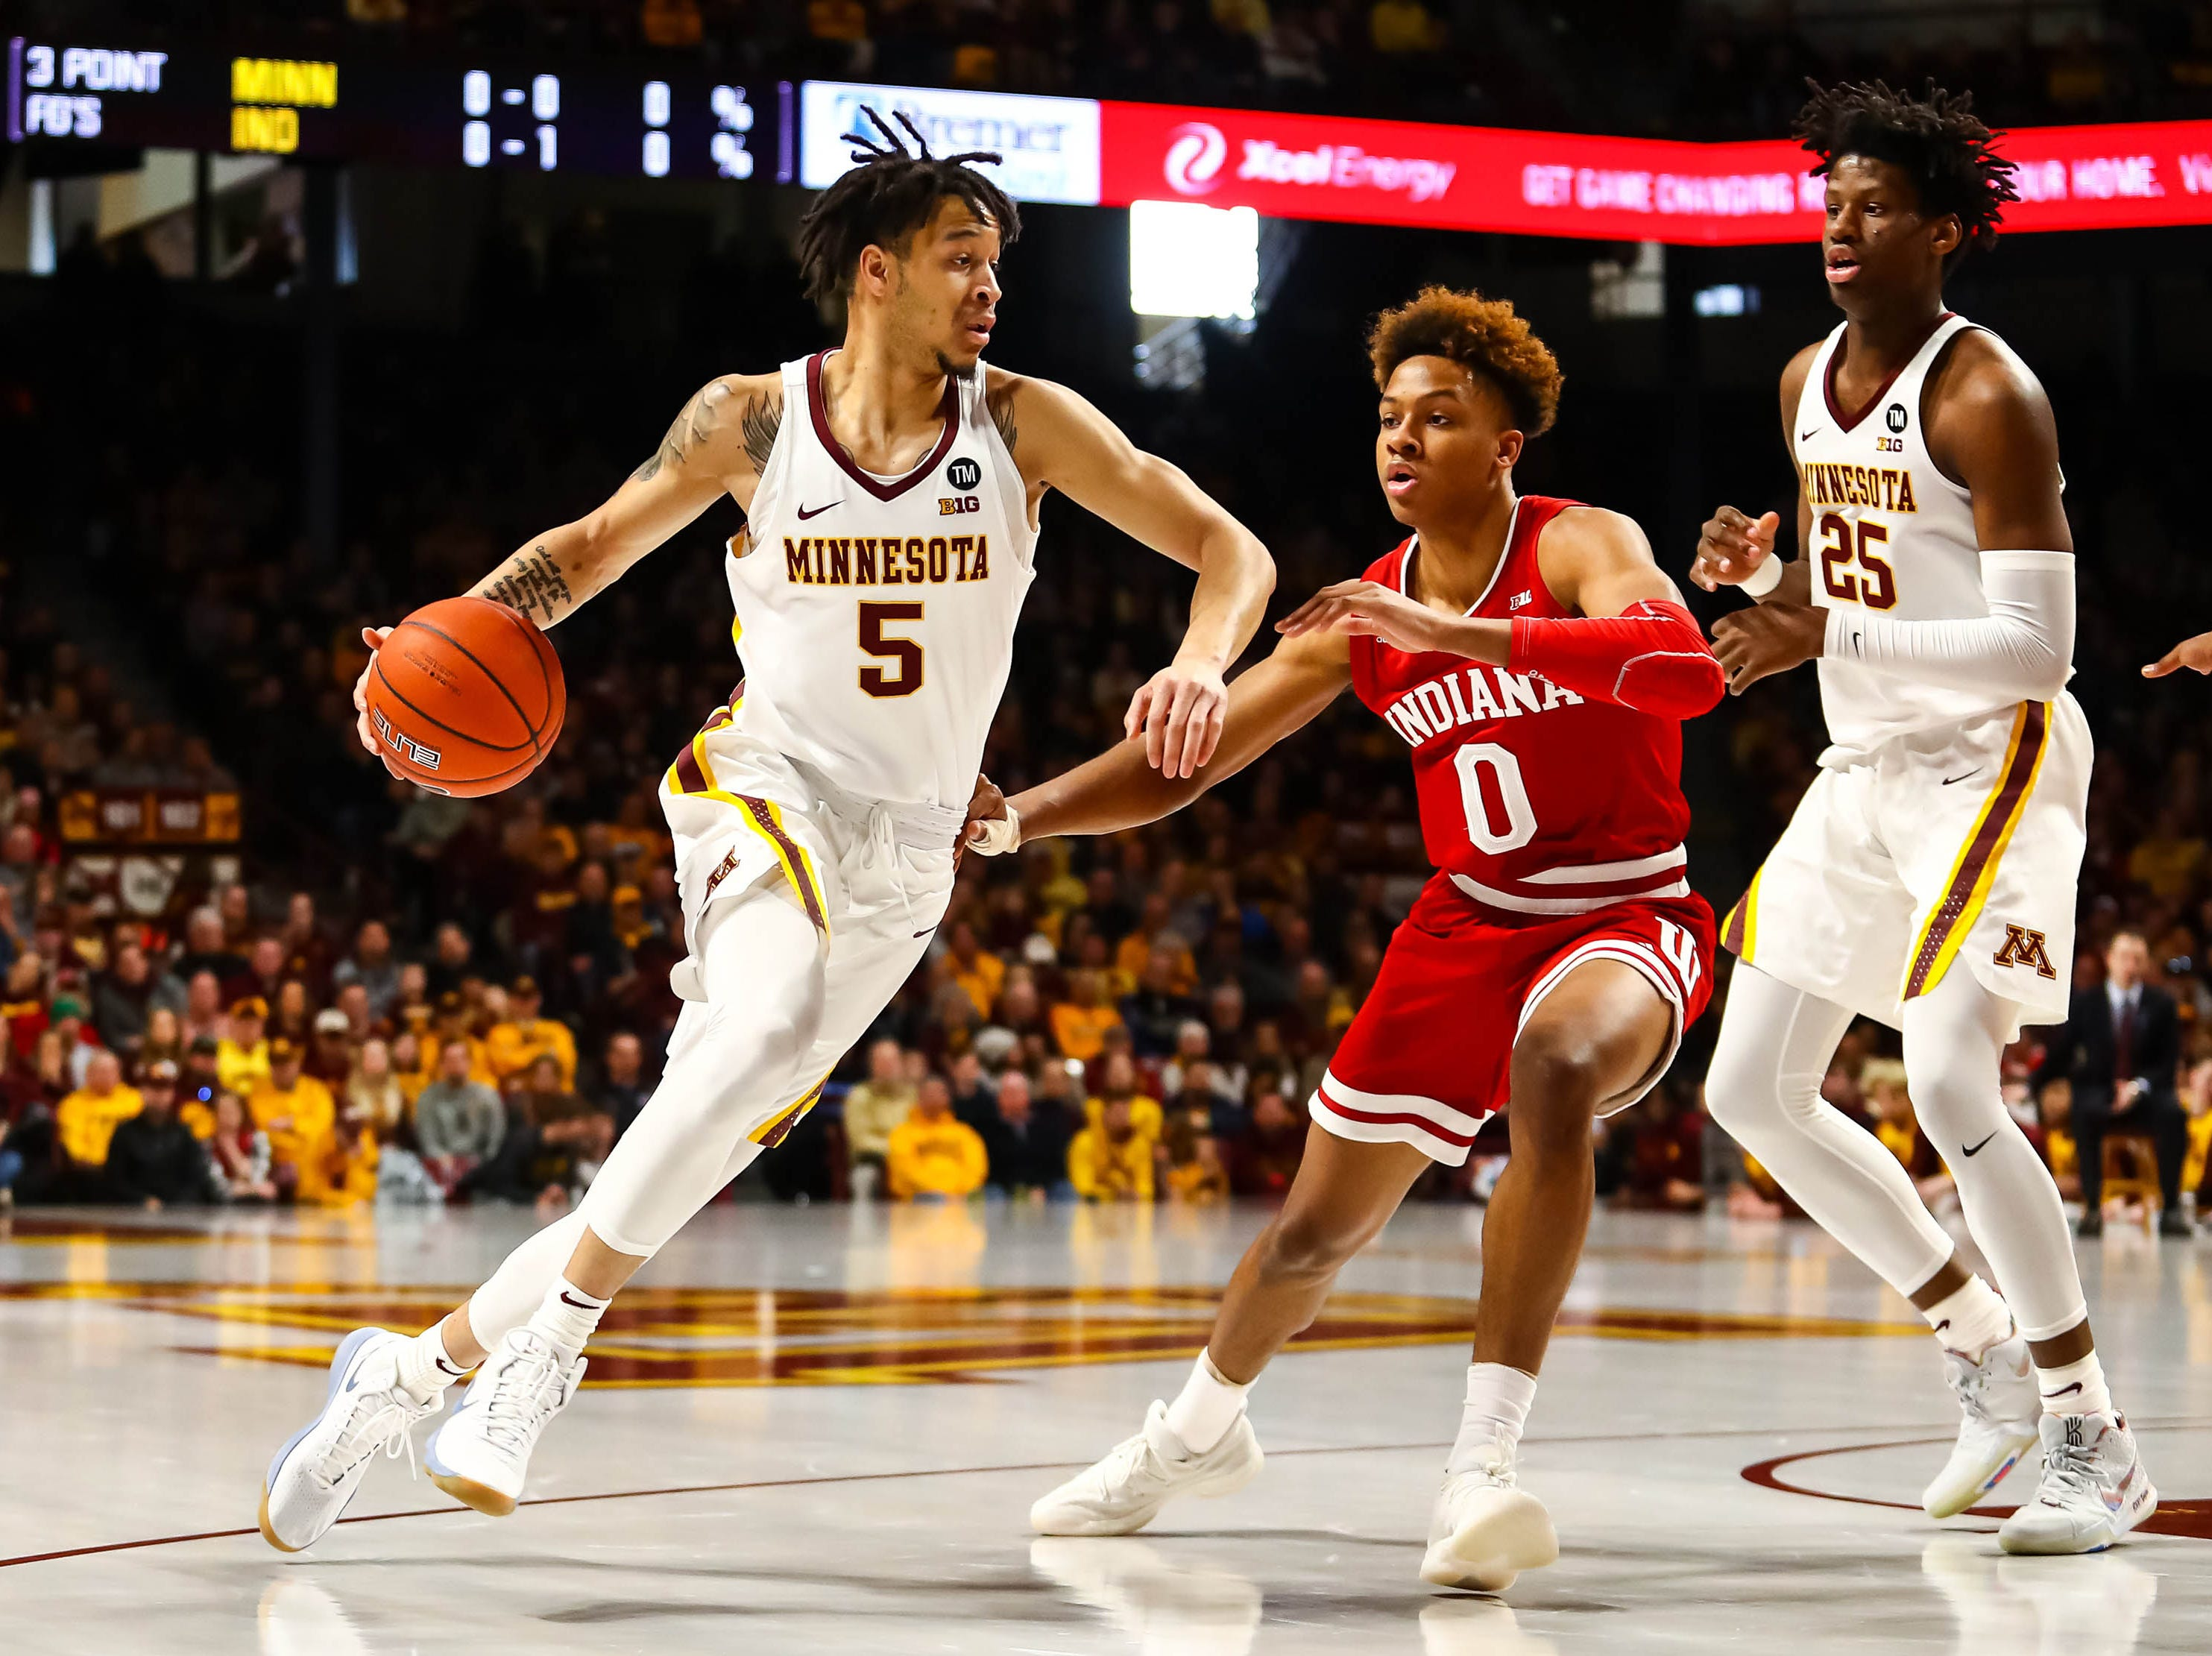 Minnesota Golden Gophers guard Amir Coffey (5) dribbles the ball while Indiana Hoosiers guard Romeo Langford (0) defends in the first half at Williams Arena.